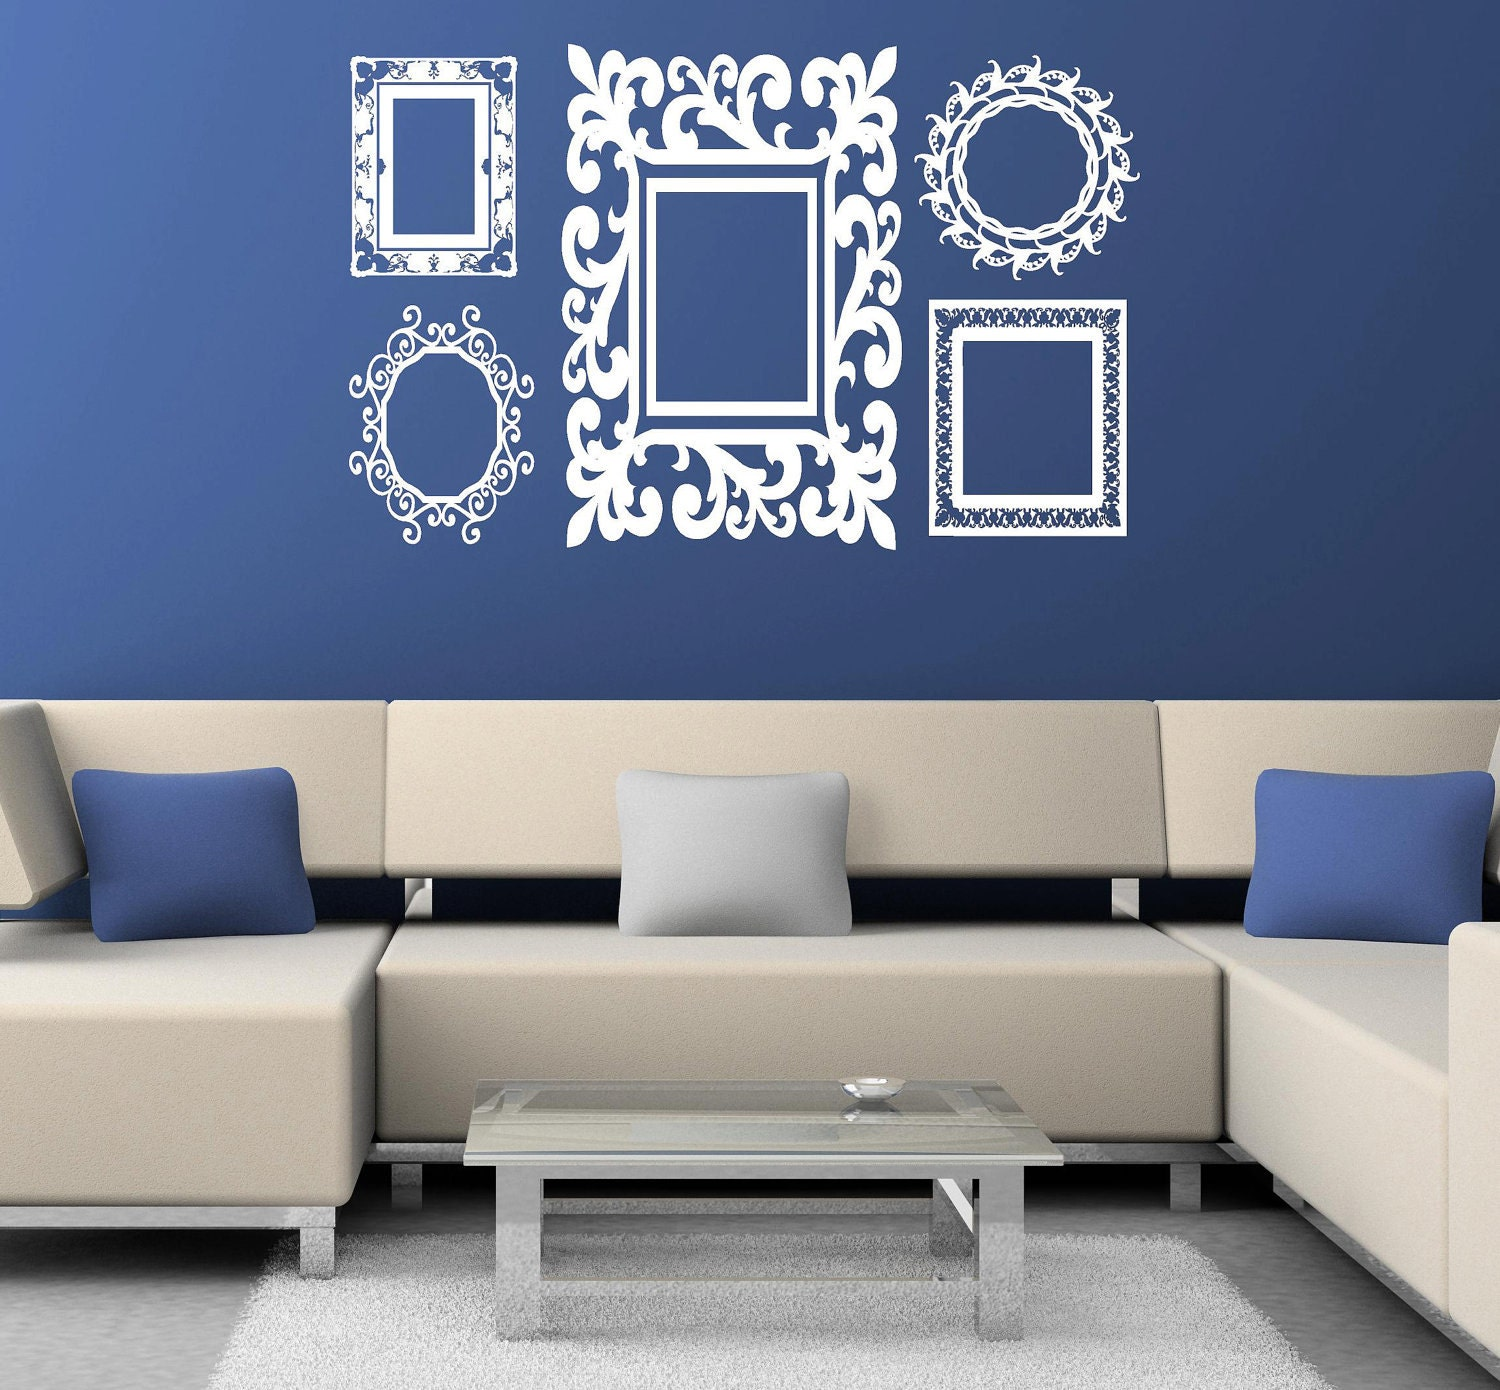 Items similar to Baroque Frames decals Vinyl Lettering